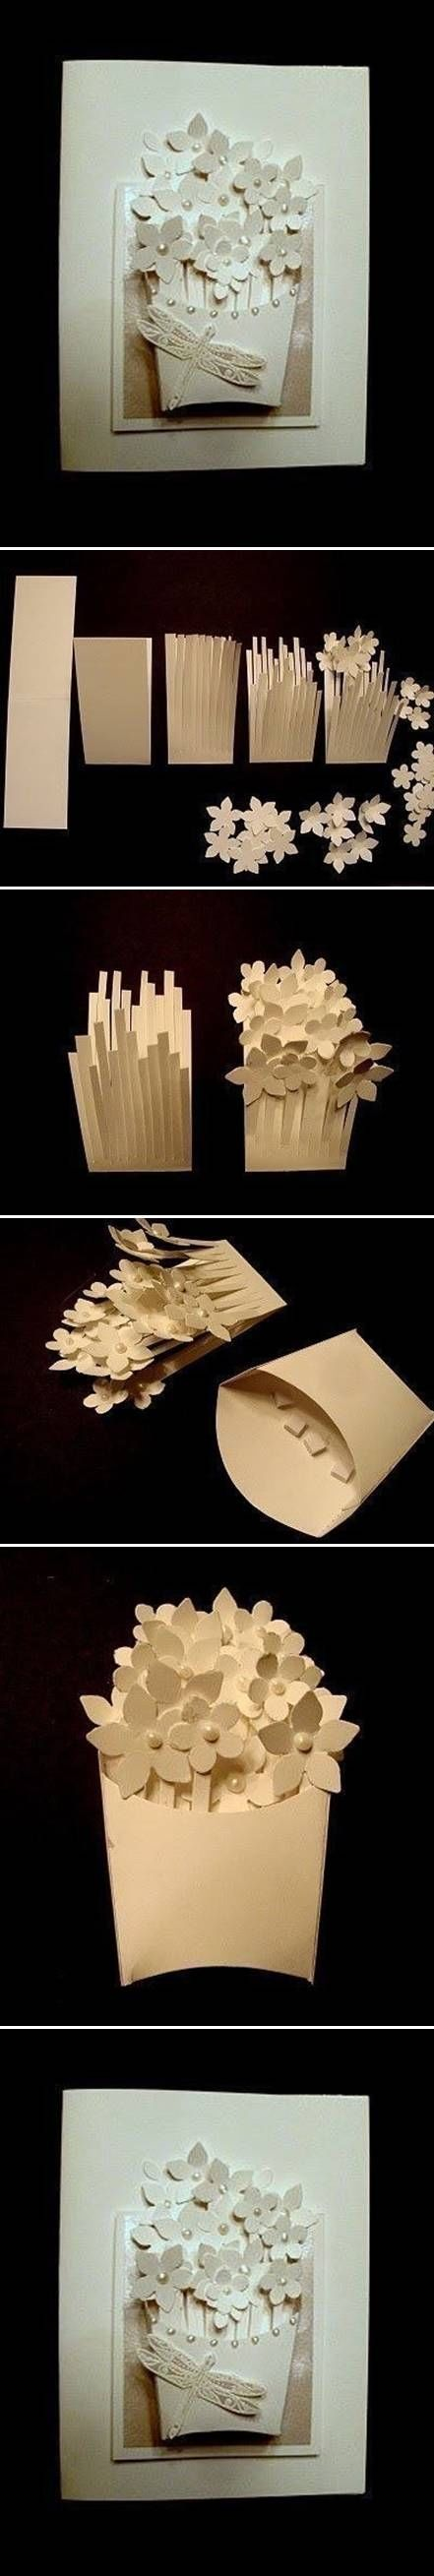 How To Make A Basket With Flowers : How to make a flower basket card pictures photos and